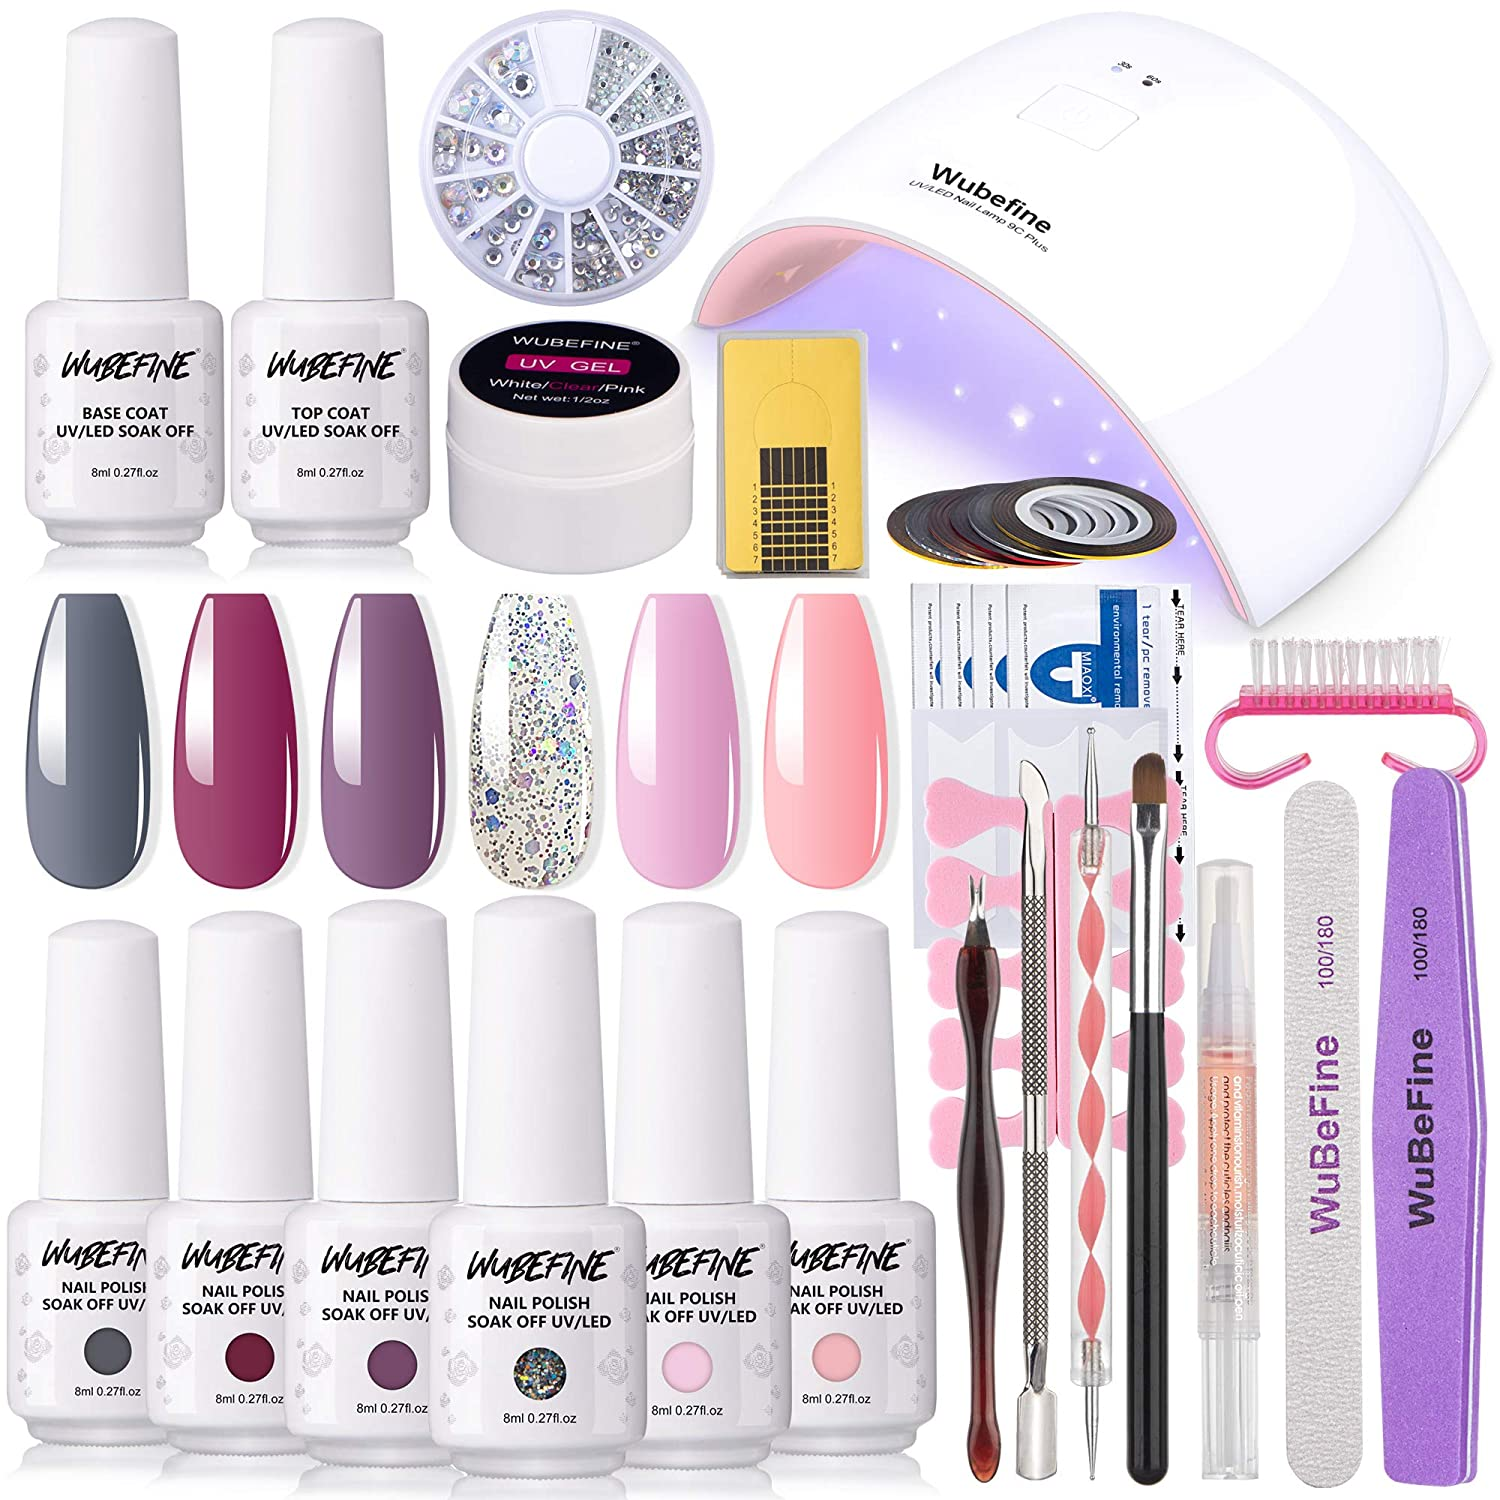 Gel Nail Polish Kit, 6 Colors Gel Nail Polish Starter Kit with 36W LED Nail Dryer Lamp and Base Top Coat Home DIY Beginner Kit Gel Professional Tools Set